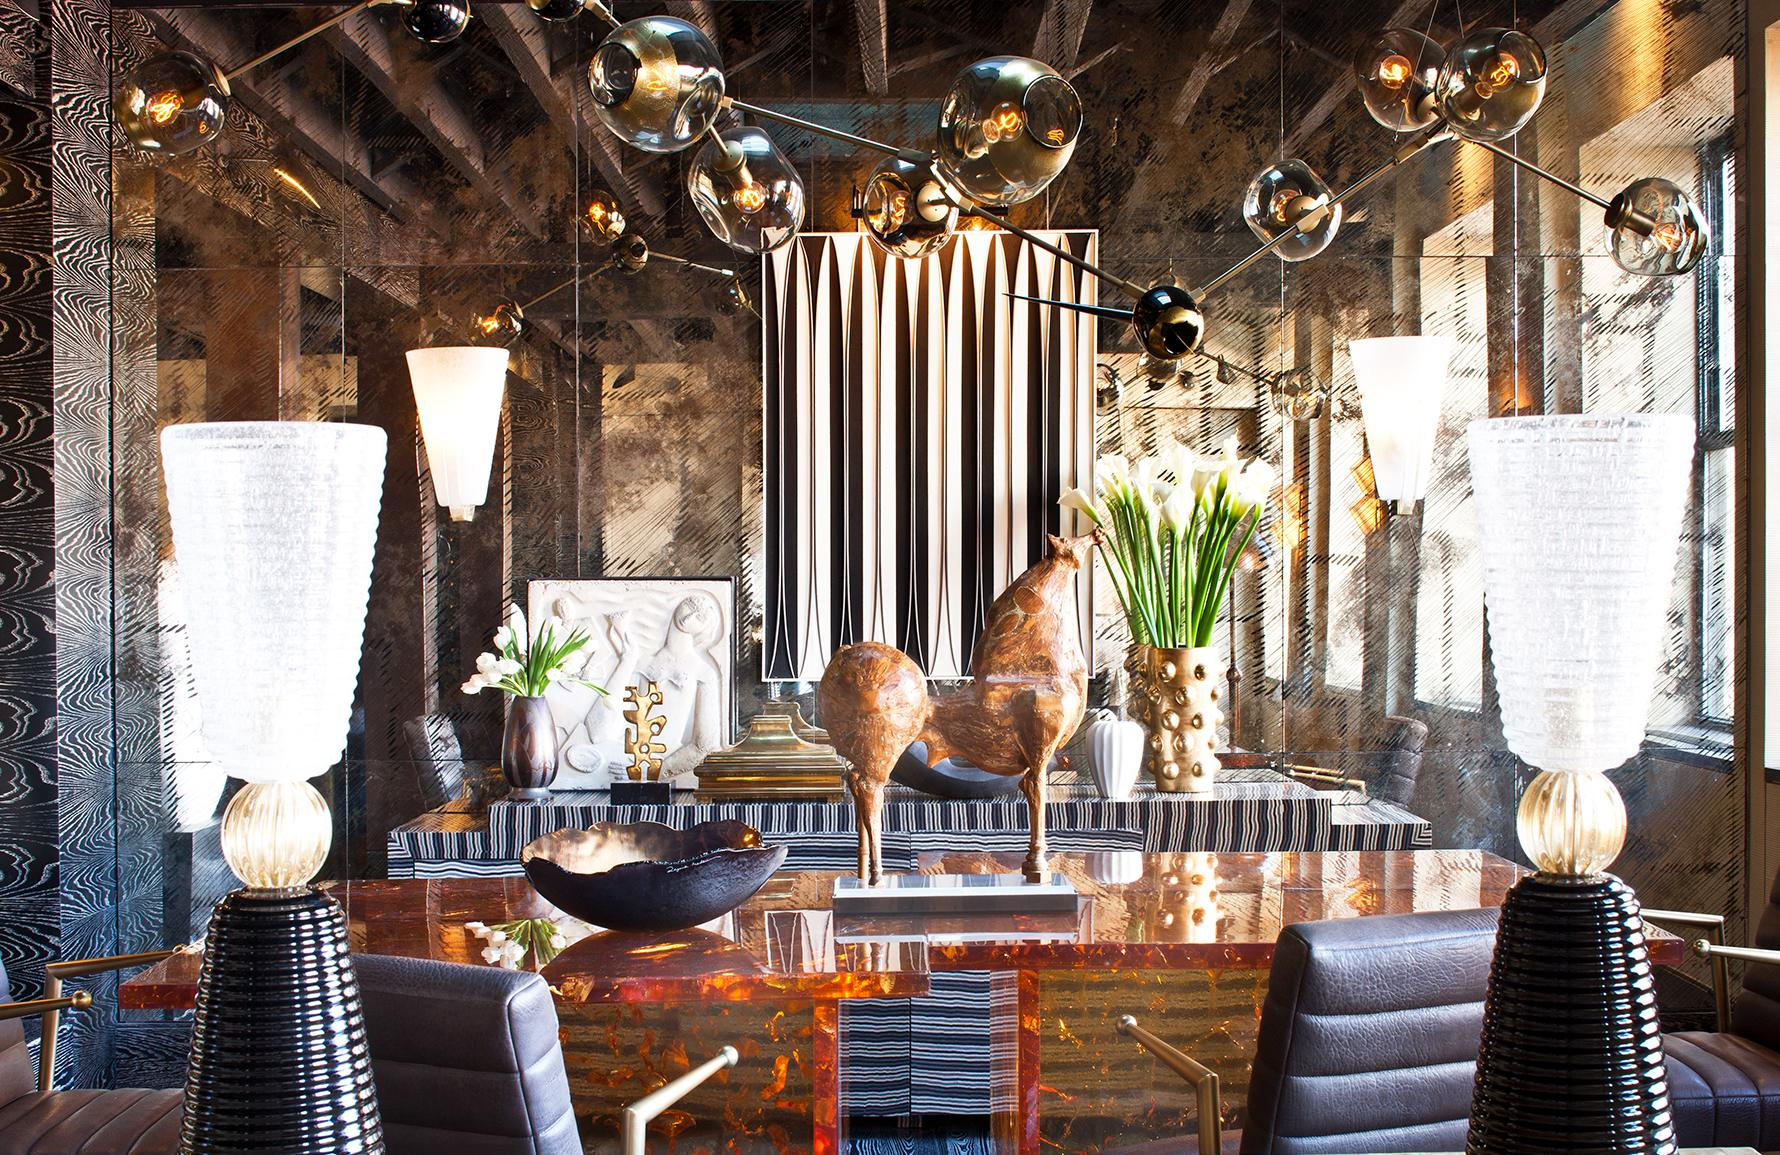 Top 10 American Interior Designers You Need To Know - Kelly Wearstler - LuxDeco Style Guide